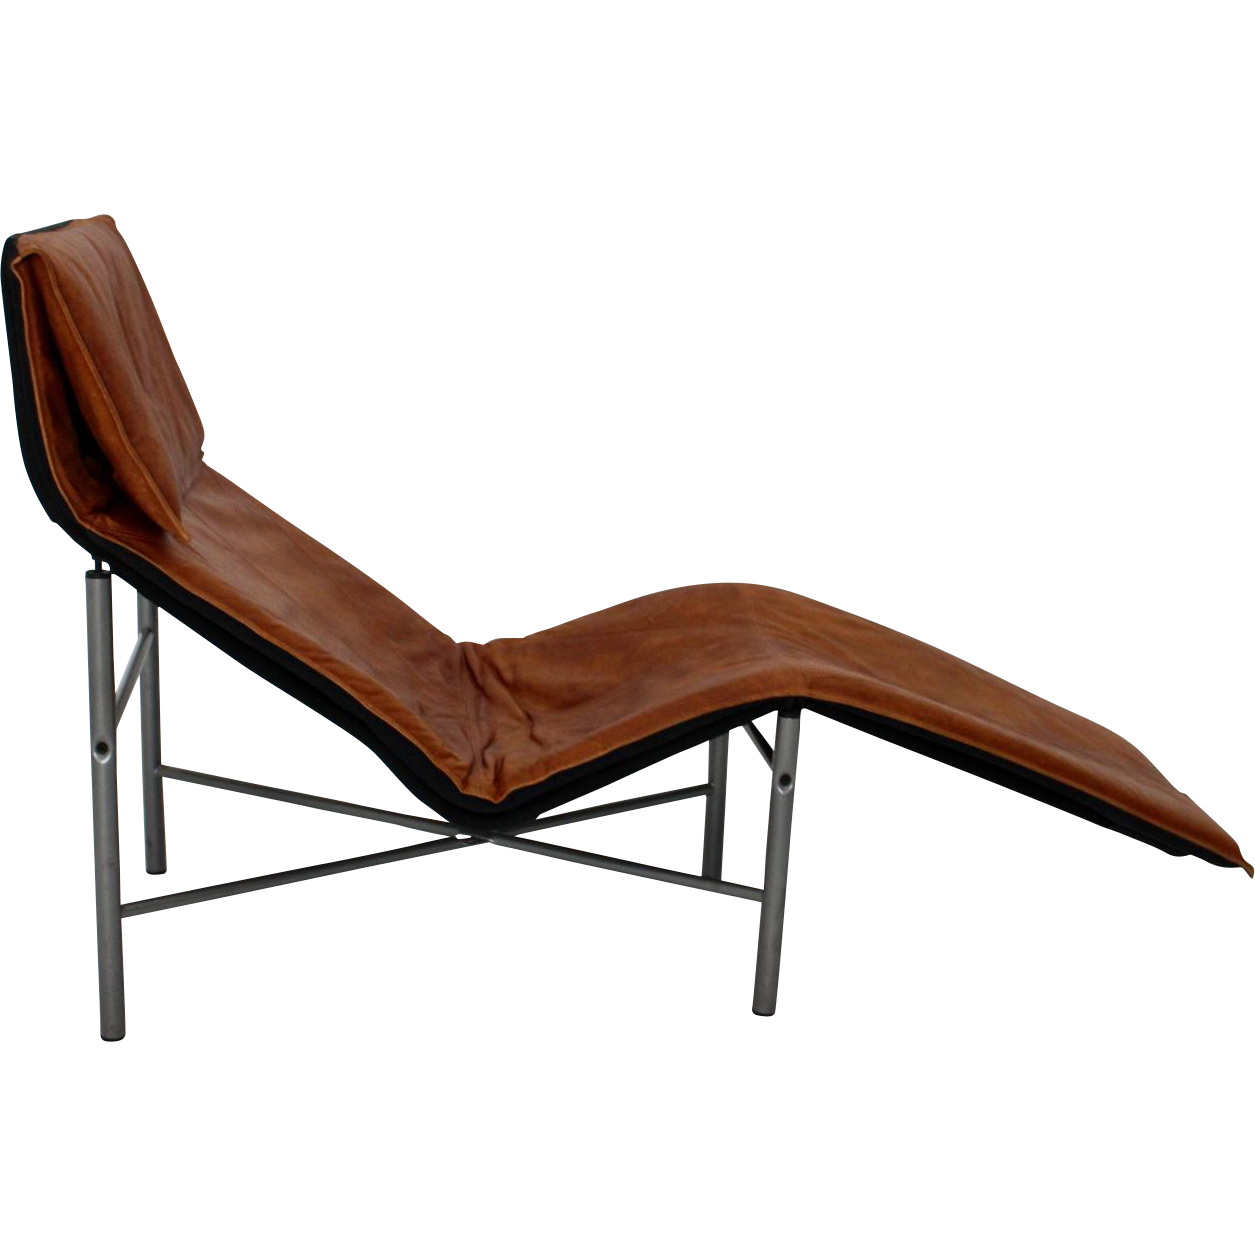 Cognac leather chaise longue by tord bjorklund 1970 sweden for Annabelle chaise